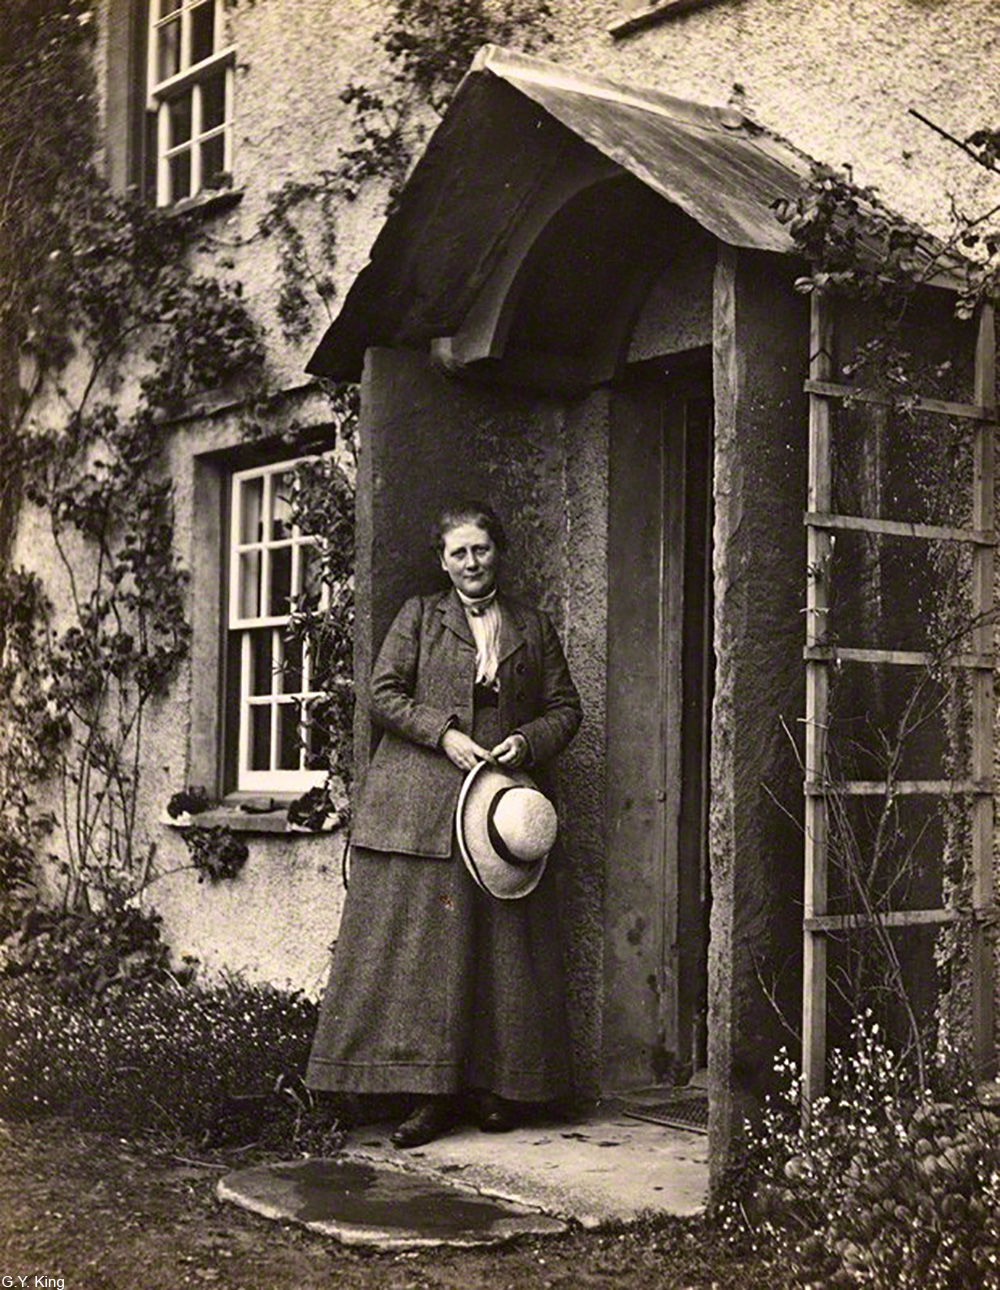 Beatrix Potter on the stoop of Hill Top house, Cumbria